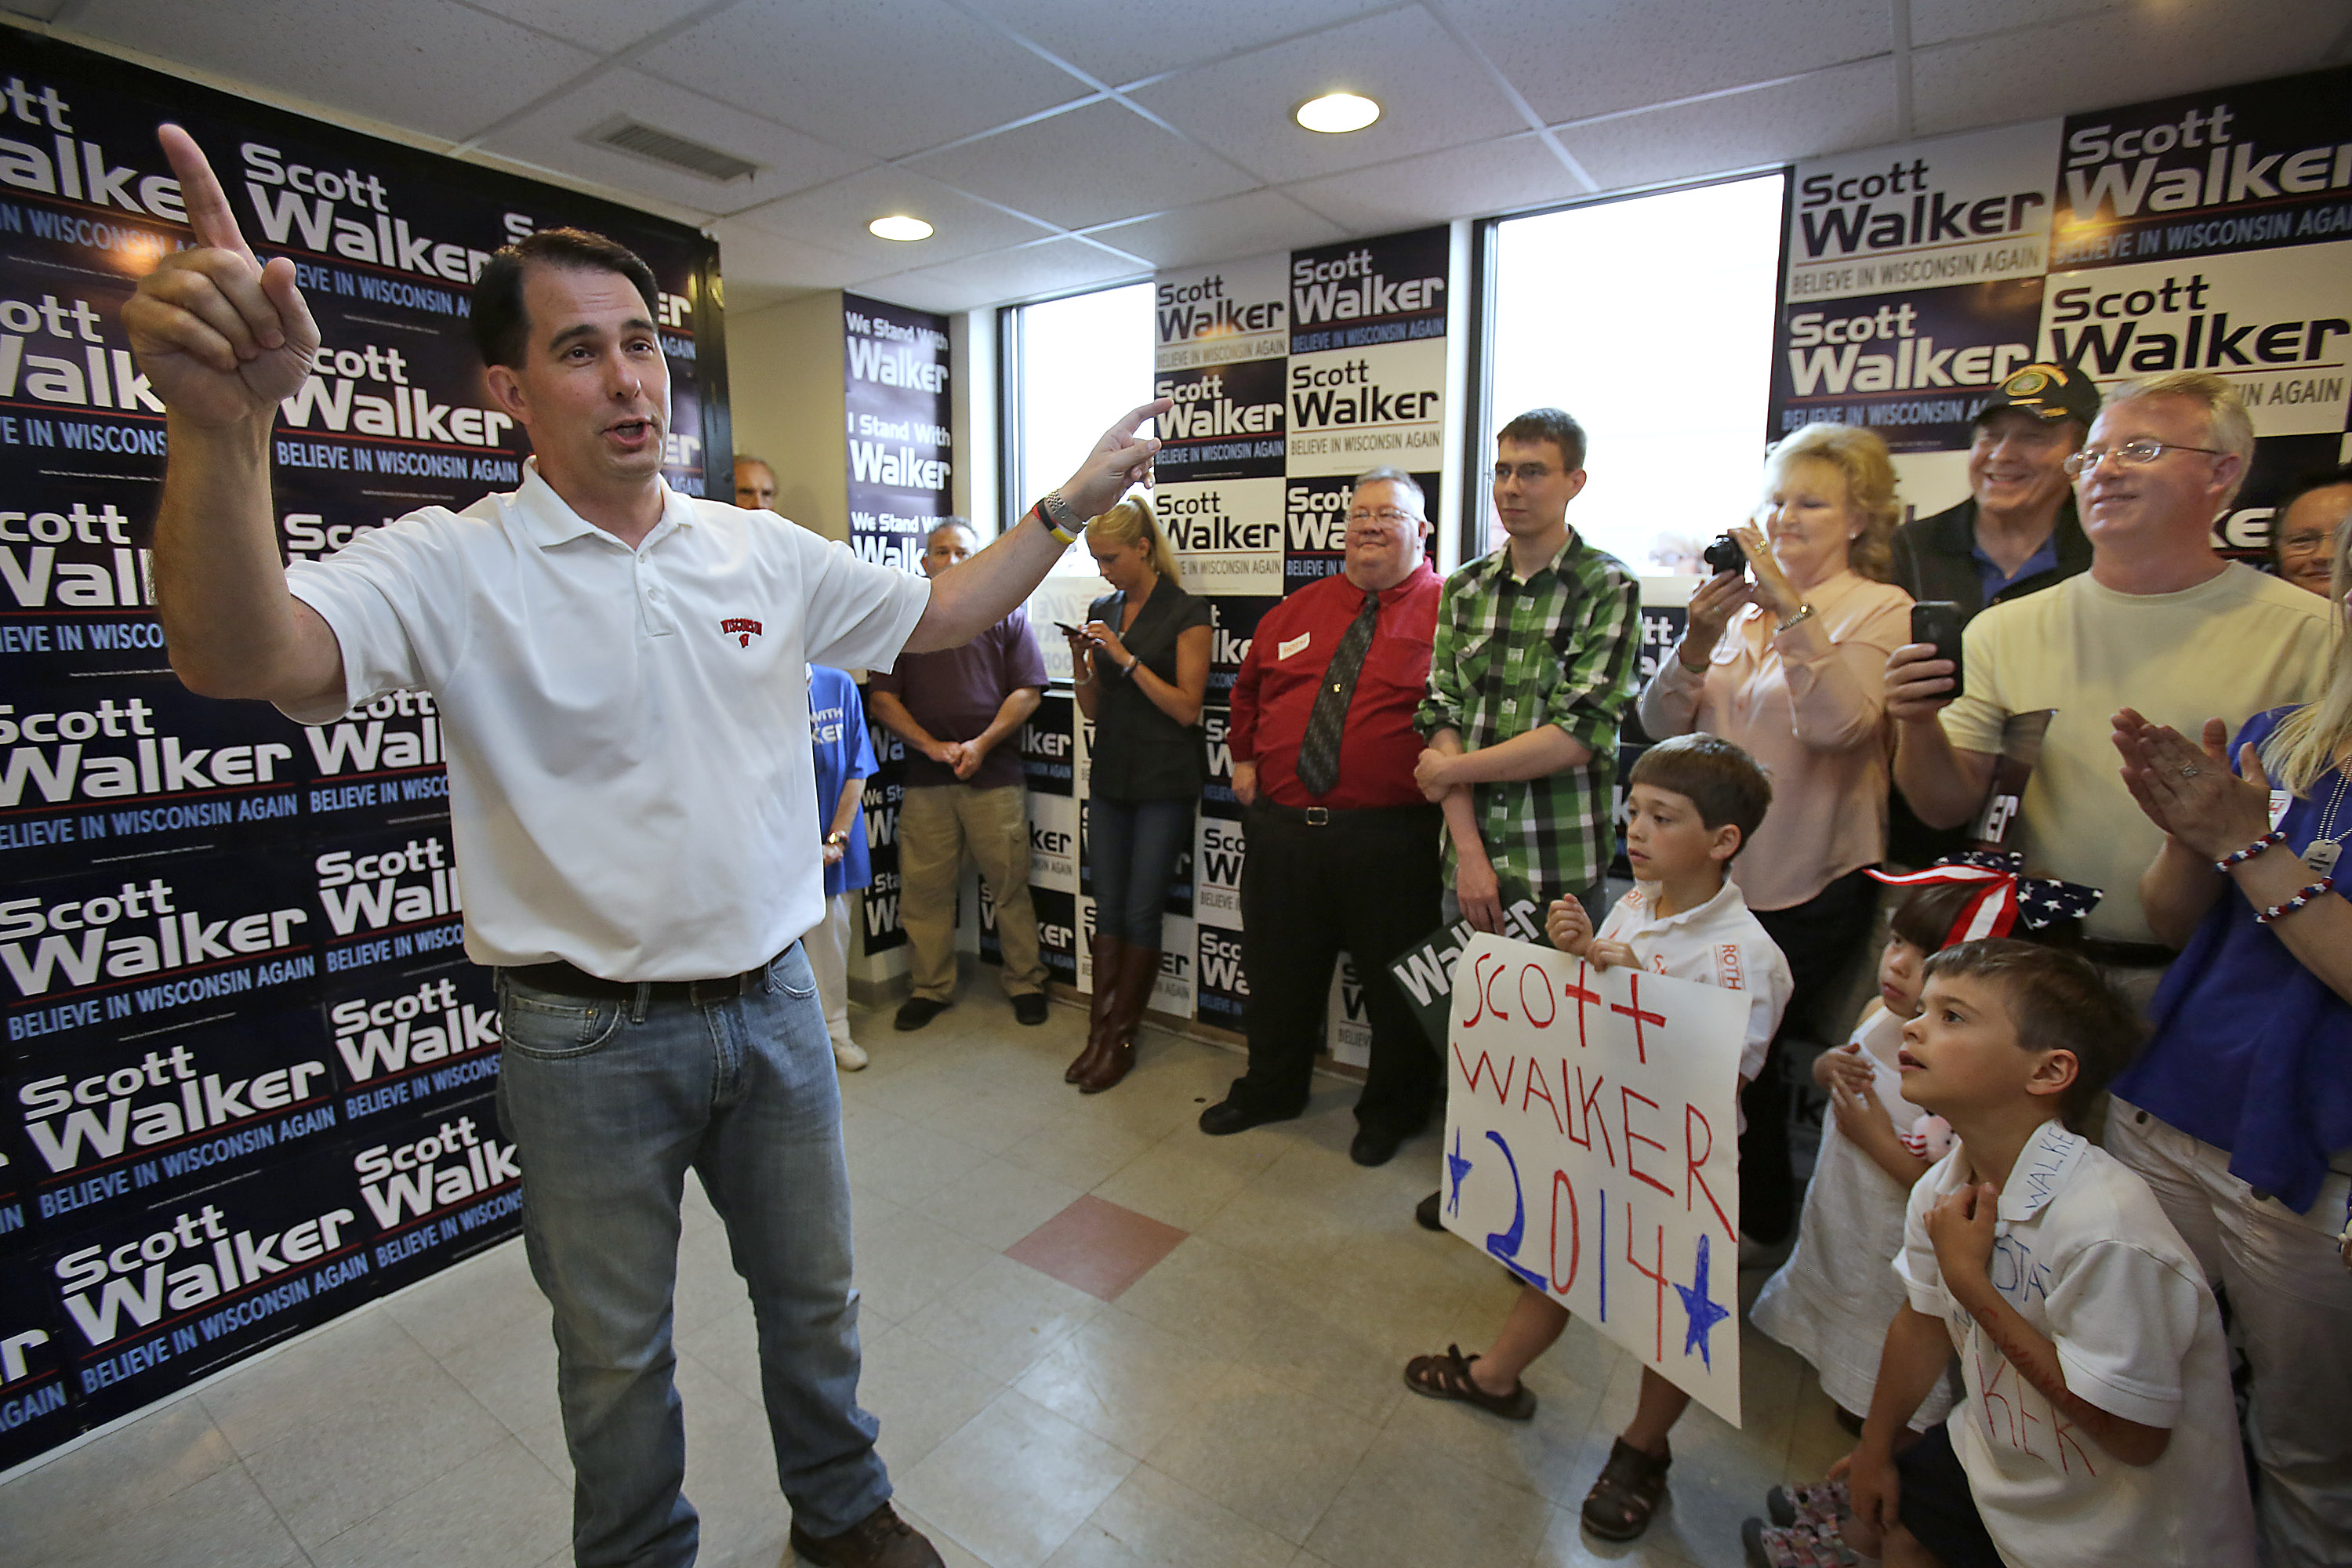 Wisconsin Governor Scott Walker makes a stop at the Republican Party of Wisconsin Appleton Headquarters Saturday, June 21, 2014 in Appleton, Wis.